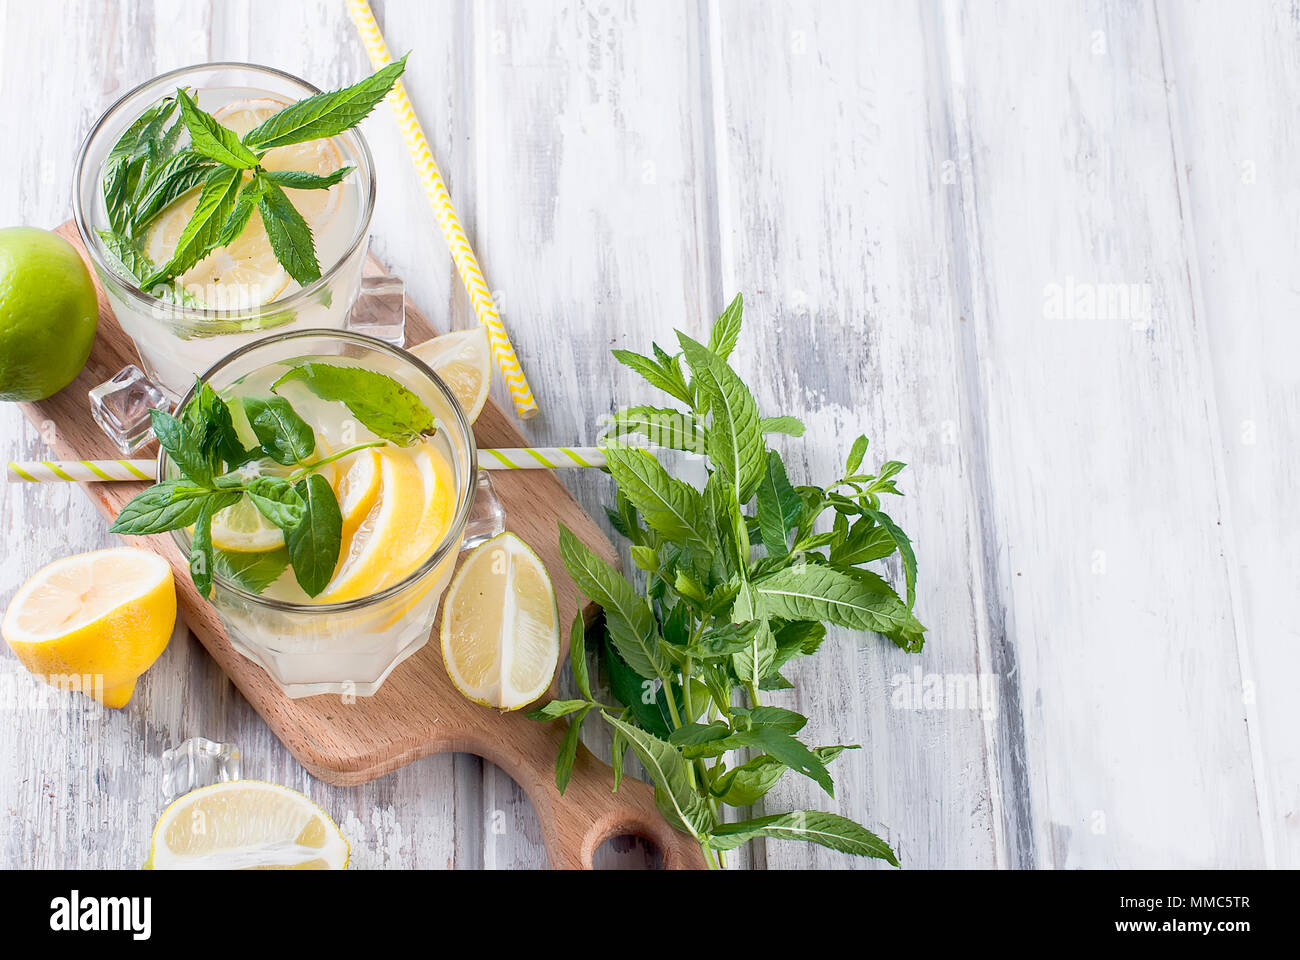 Fresh homemade lemonade in glass with ice and mint, ingredients for cocktail, lemon and lime slices, mint leaves on white wooden table, copy space - Stock Image